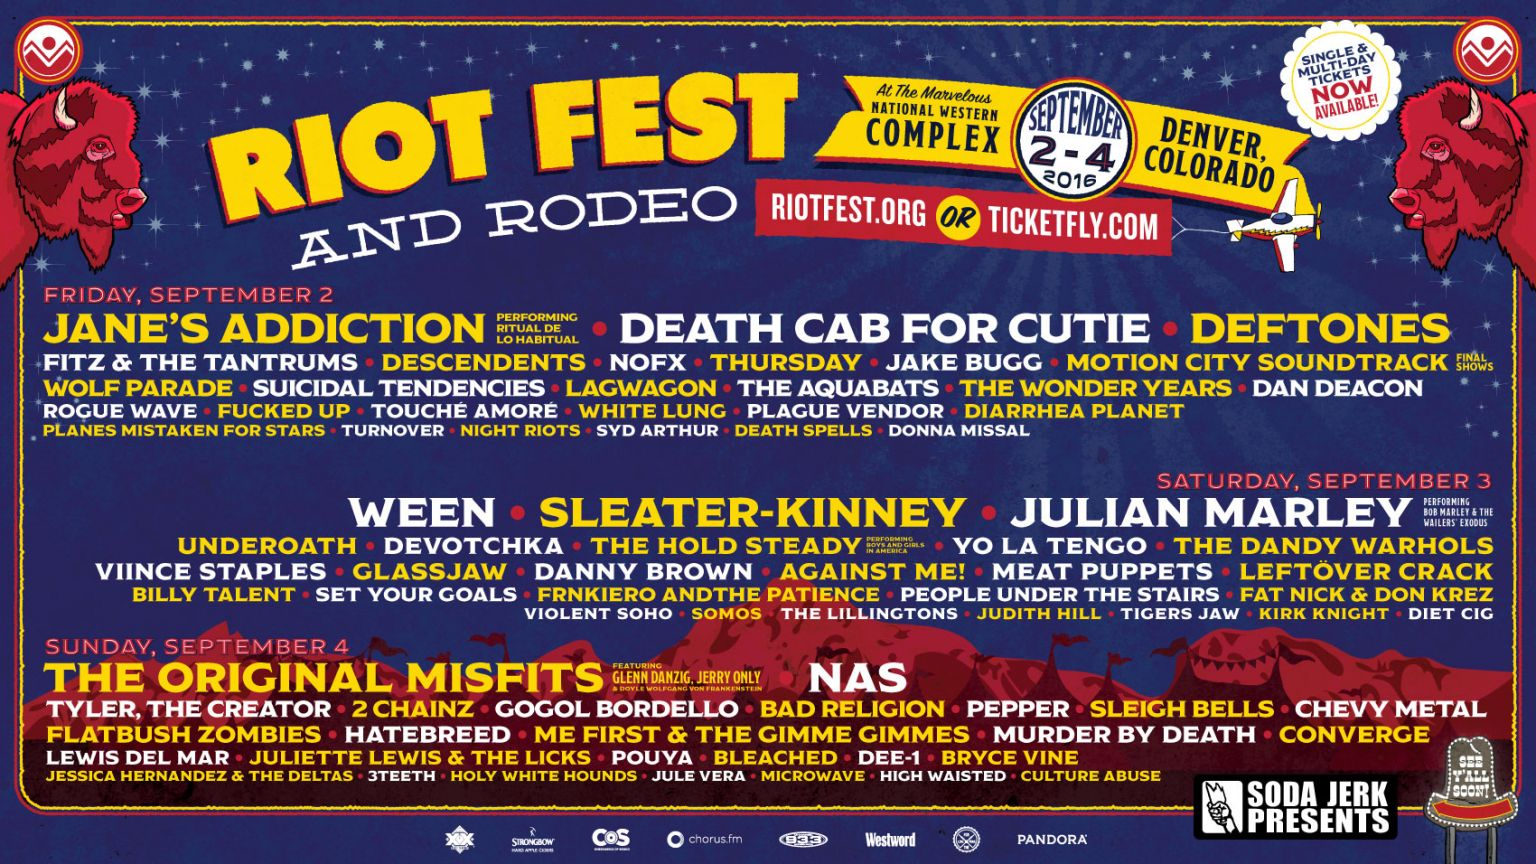 WOW! What a lineup! Riot Fest should be amazing this year, so keep it here for our concert coverage. Image Credit: http://riotfest.org/